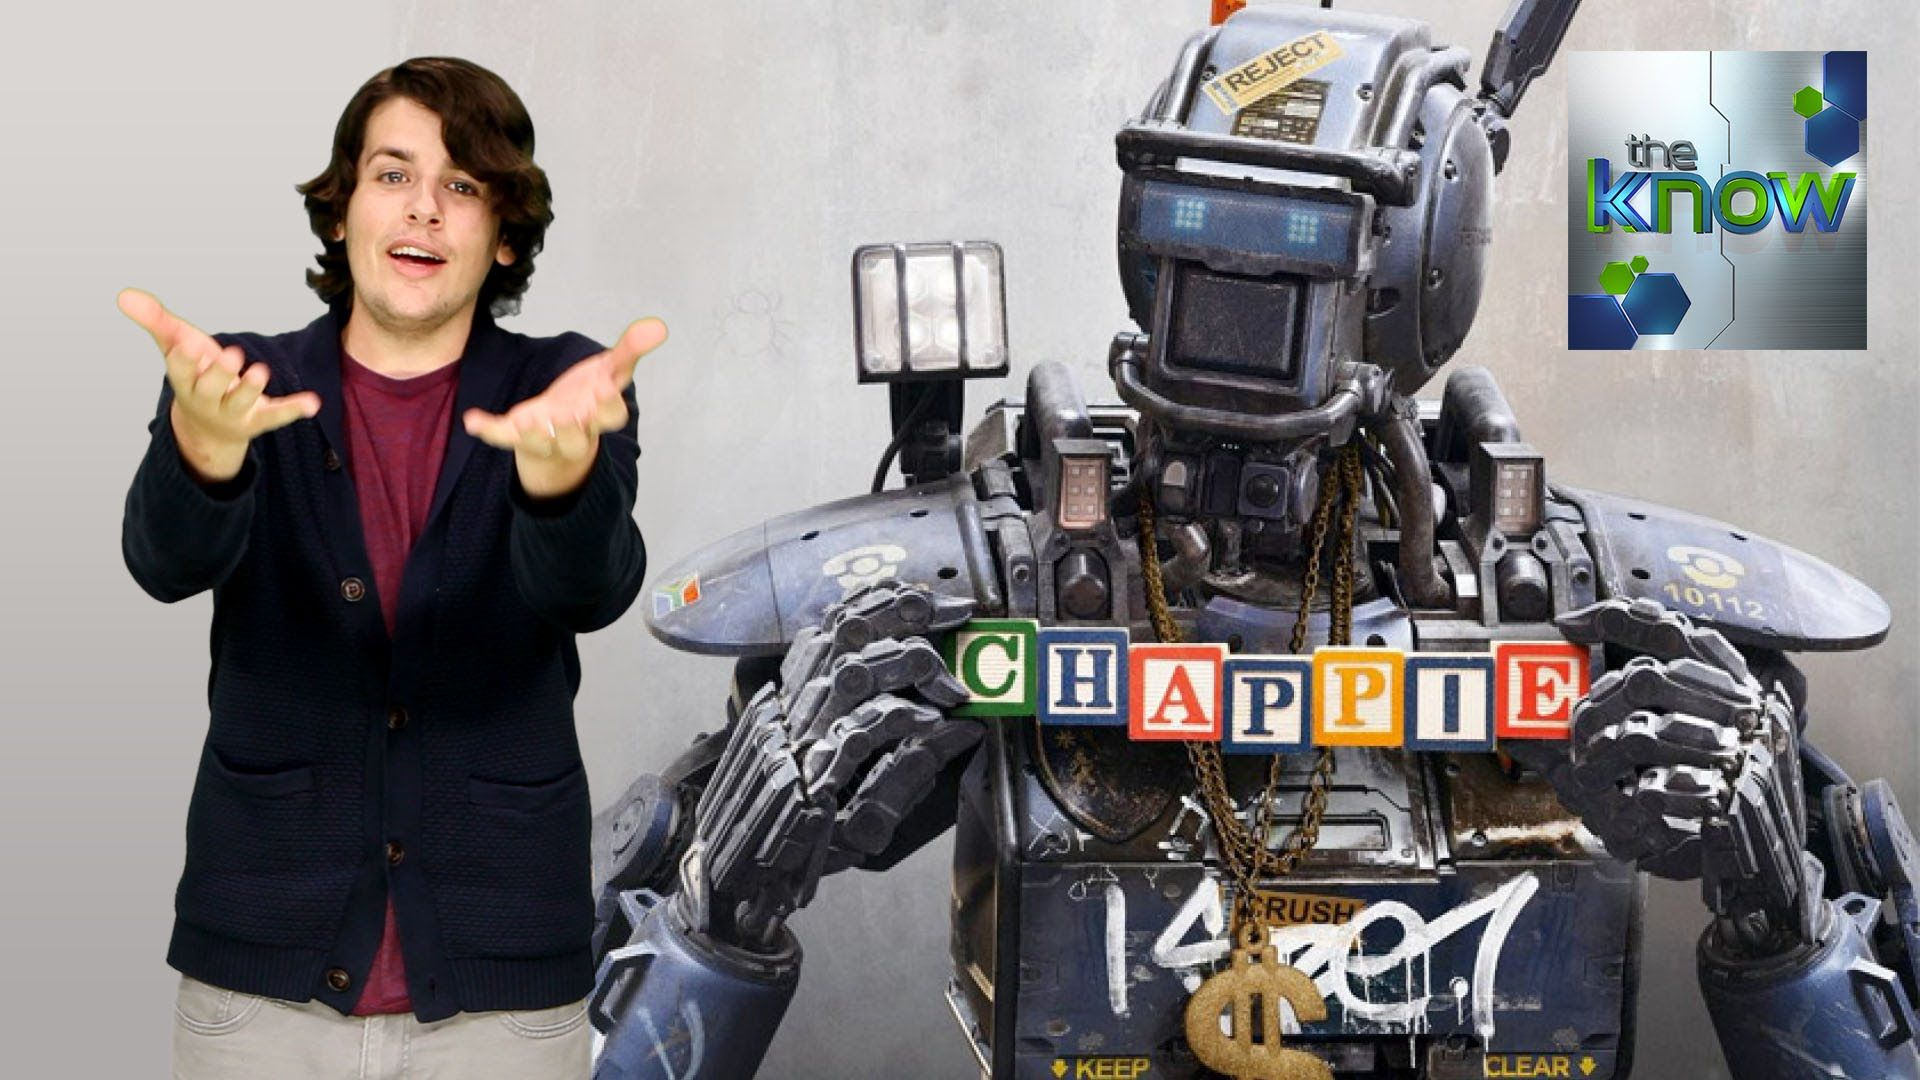 Your First Look At Chappie From District 9 Elysium Director The